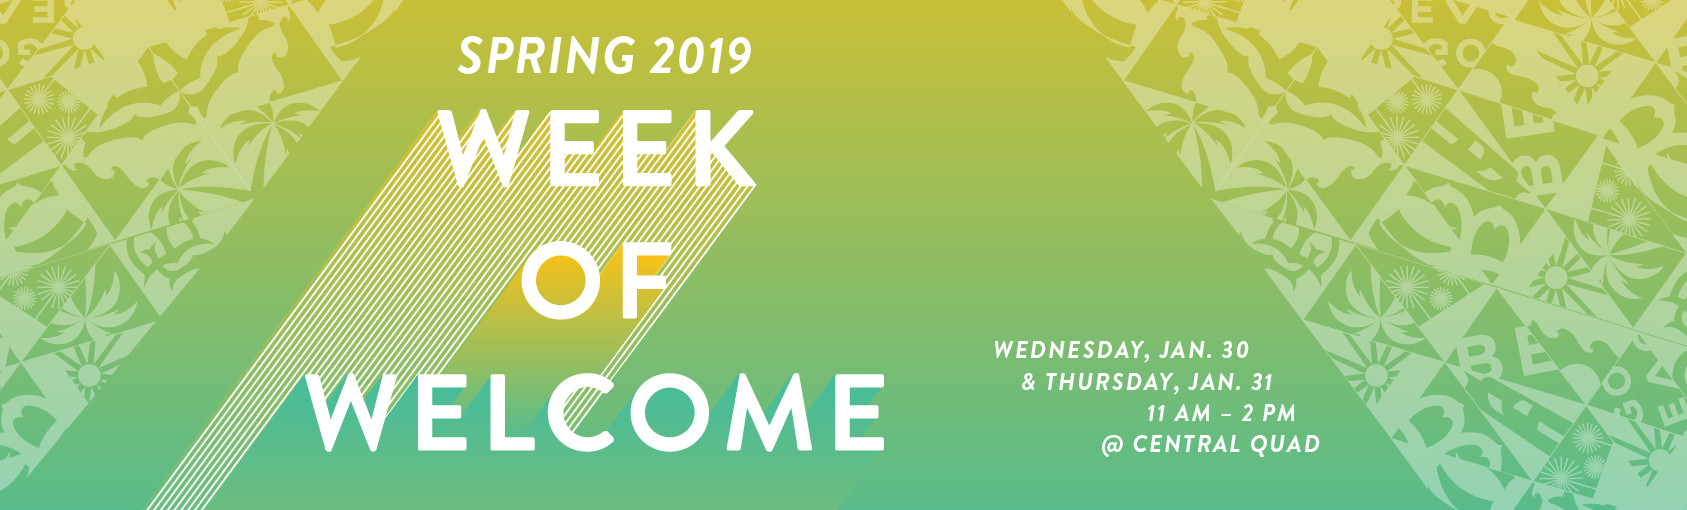 Week of Welcome Spring 2019 Banner